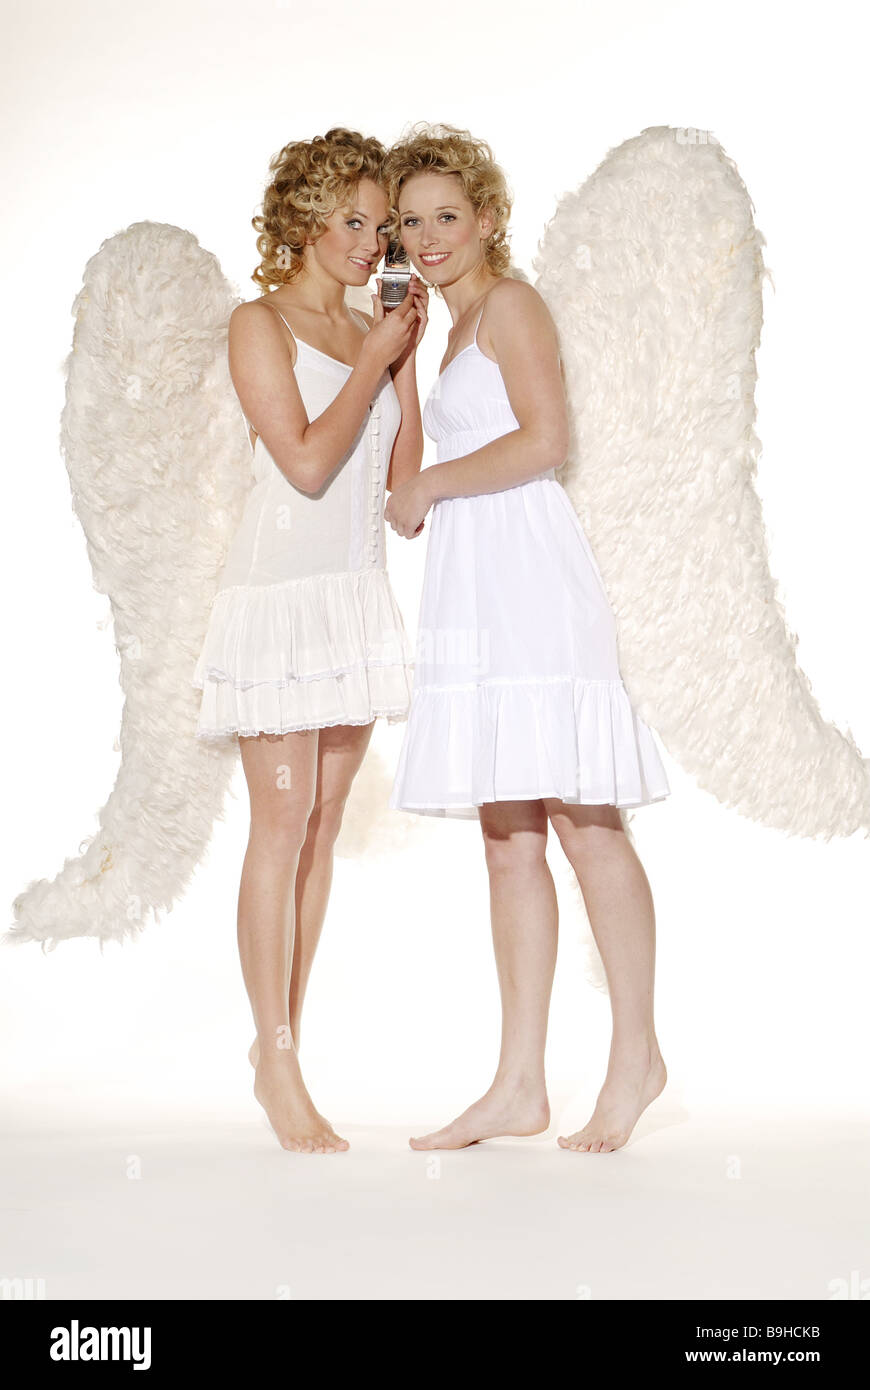 Women young blond angel wings smiling telephones cheerfully cell phone together barefoot christmas people christmas - Stock Image